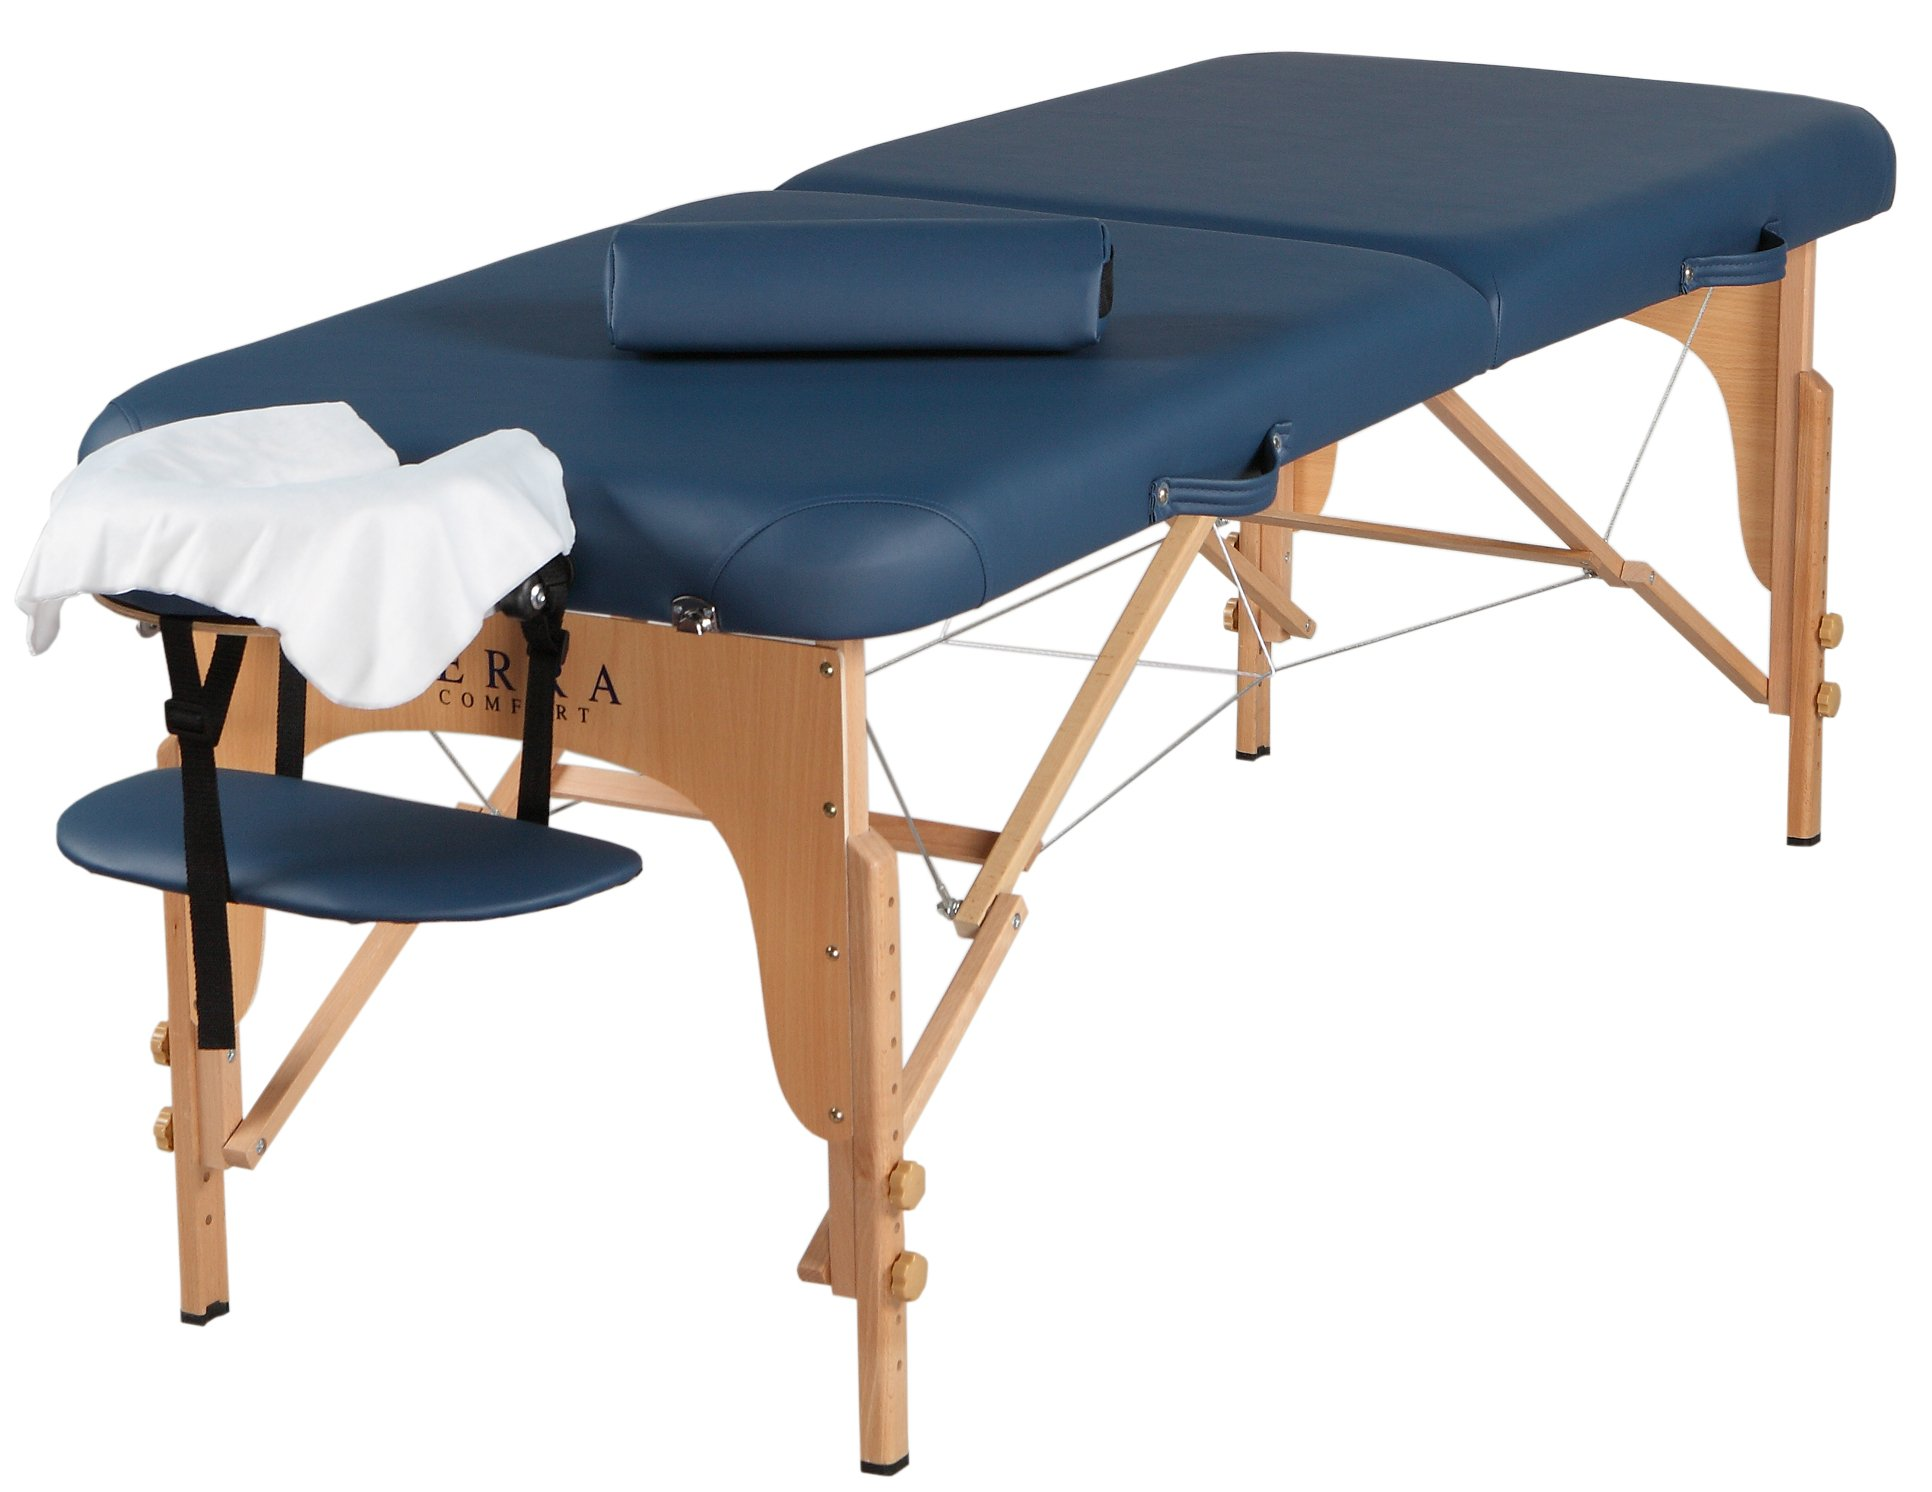 Sierra Comfort Professional Series Portable Massage Table, Royal Blue